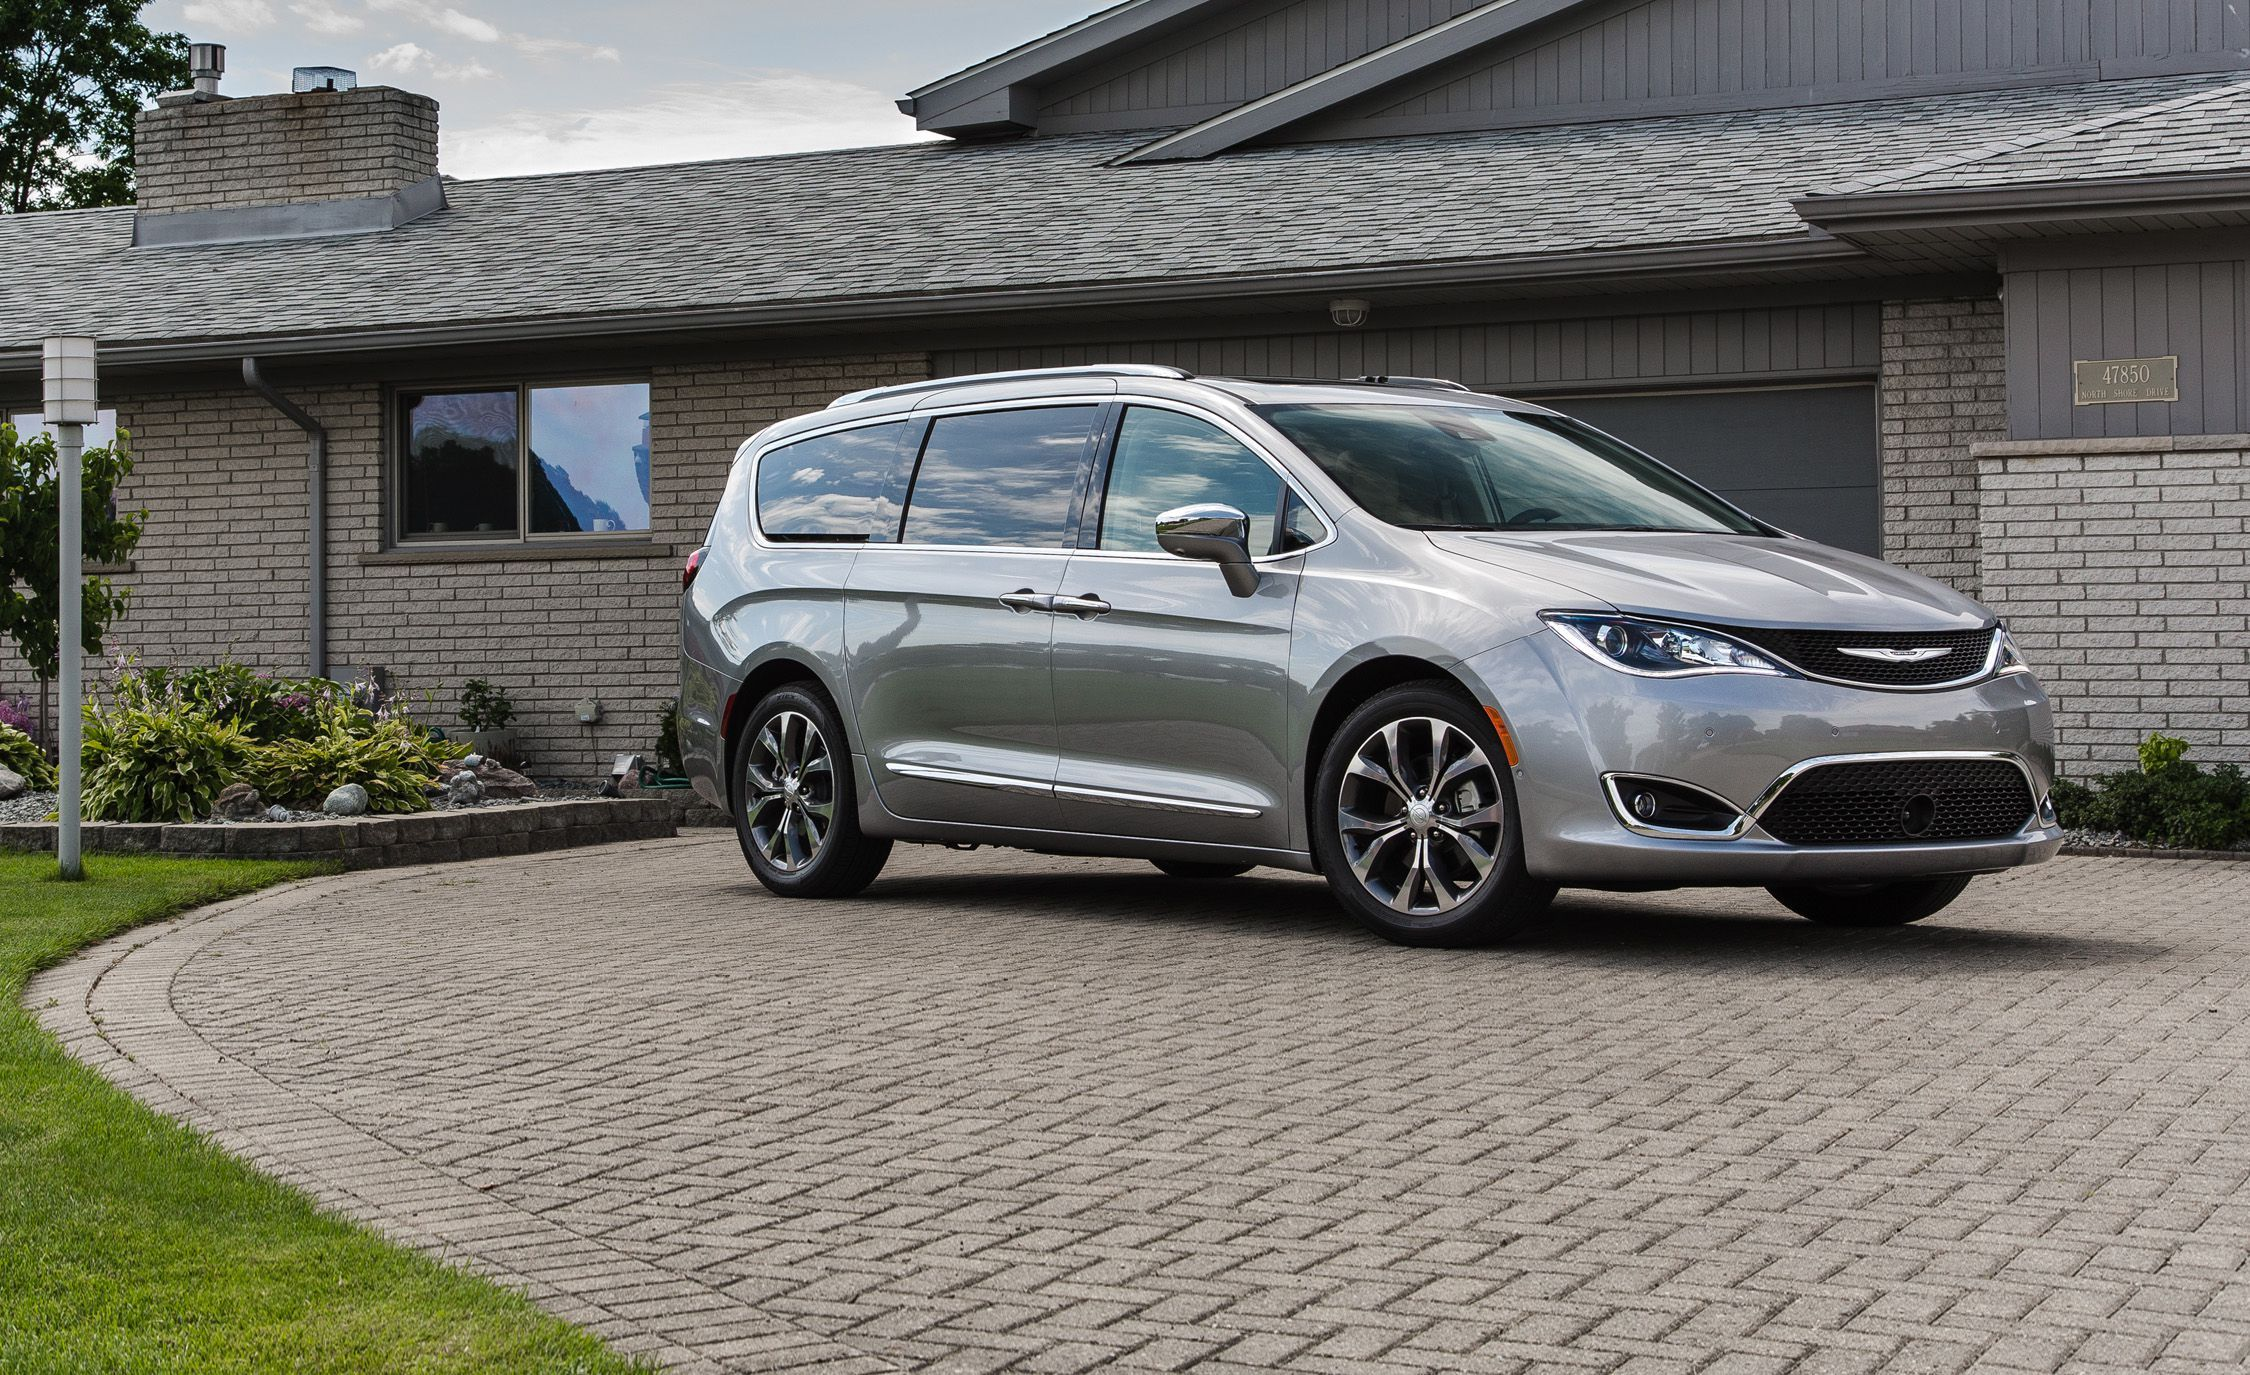 2018 Chrysler Pacifica With Images Chrysler Pacifica Chrysler